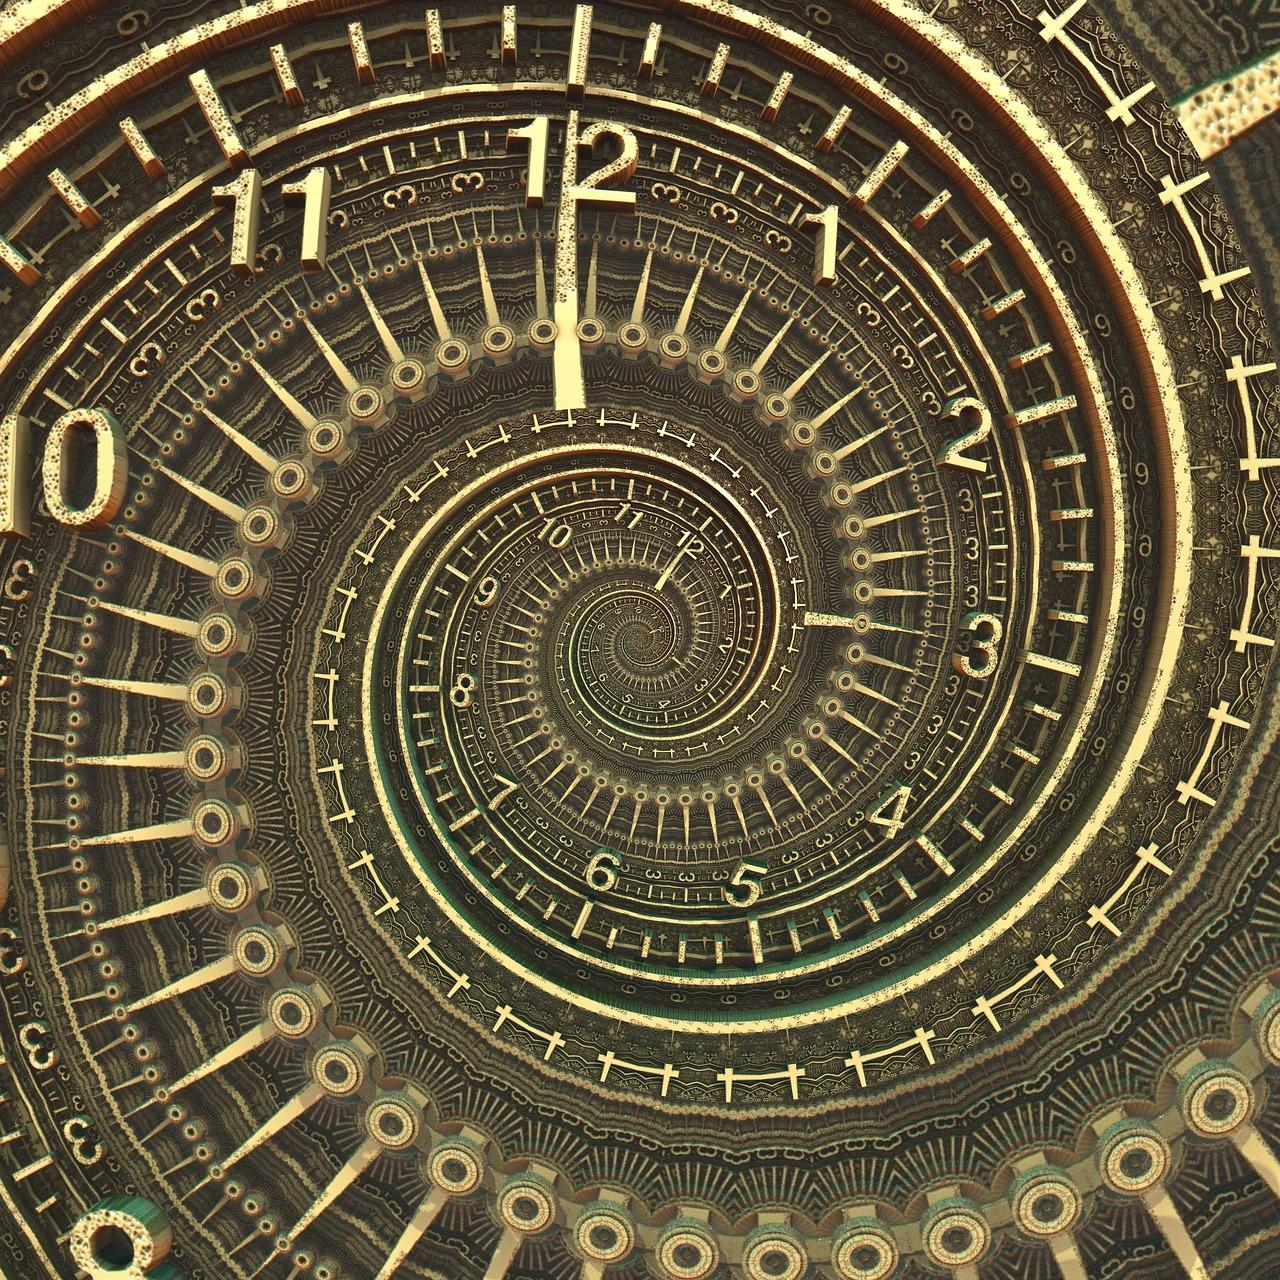 Against a black background, golden numbers and tick marks suggesting a clock, spiral into the center.